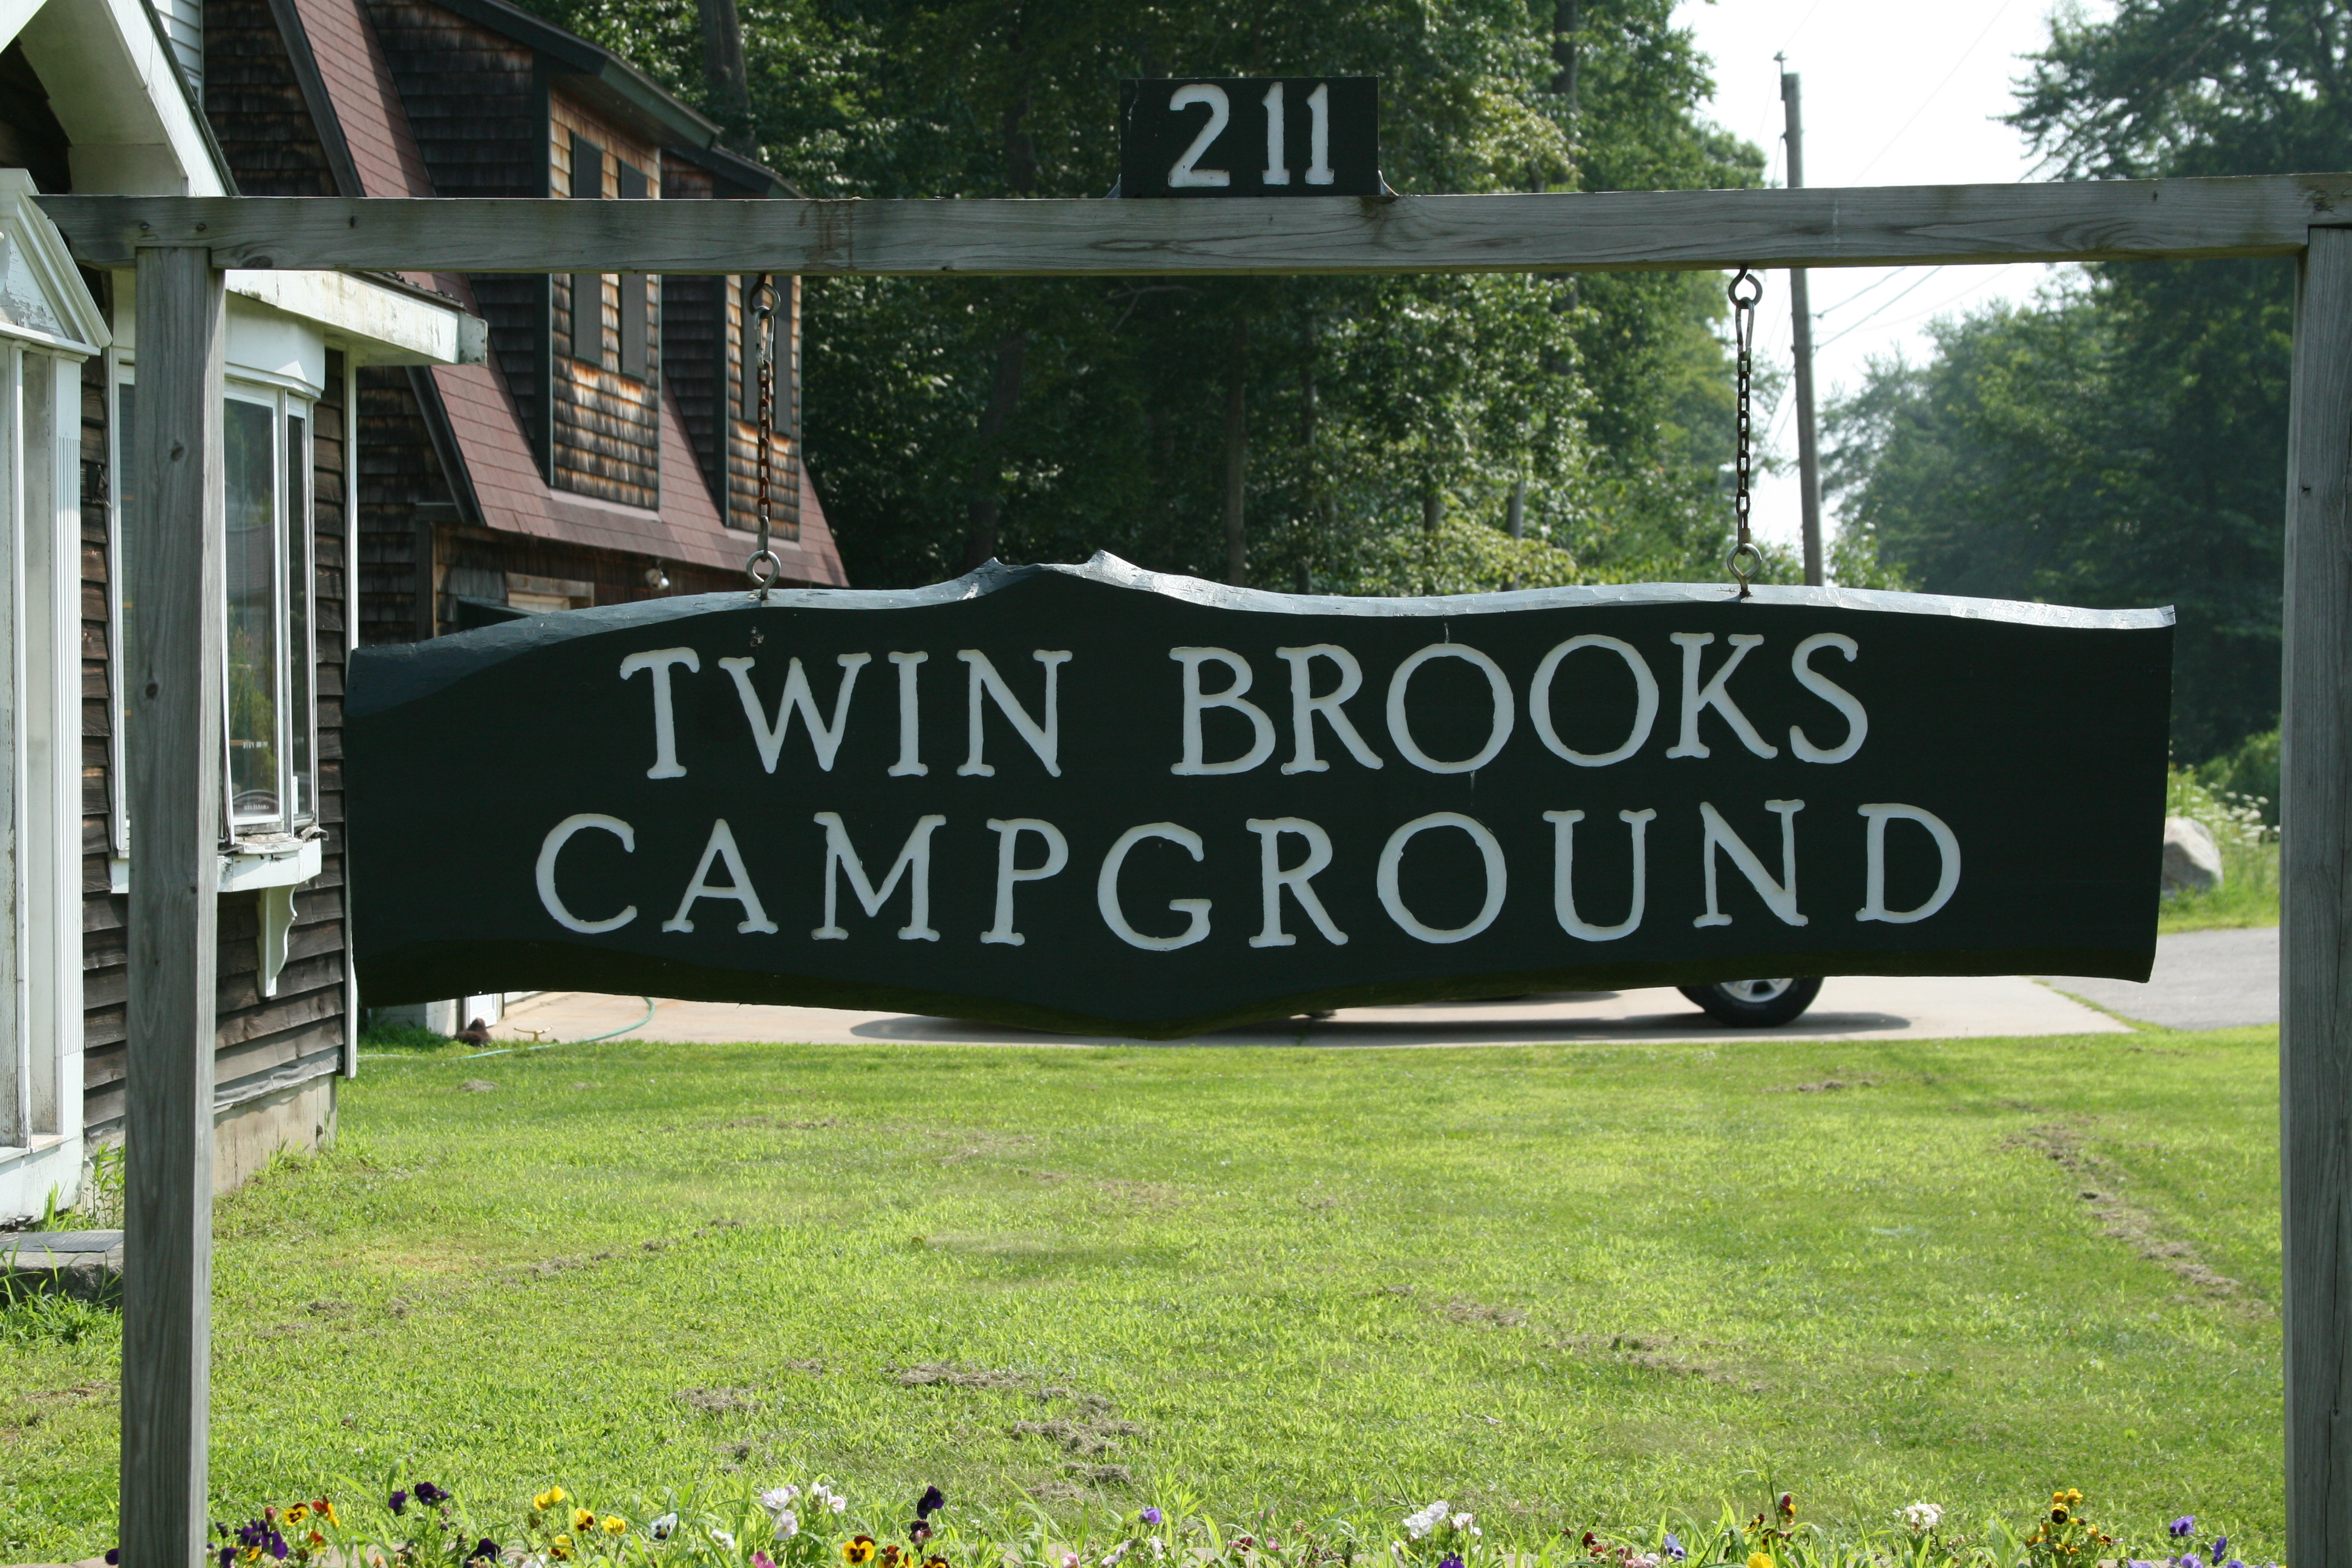 Twin Brooks Campground - WELCOME